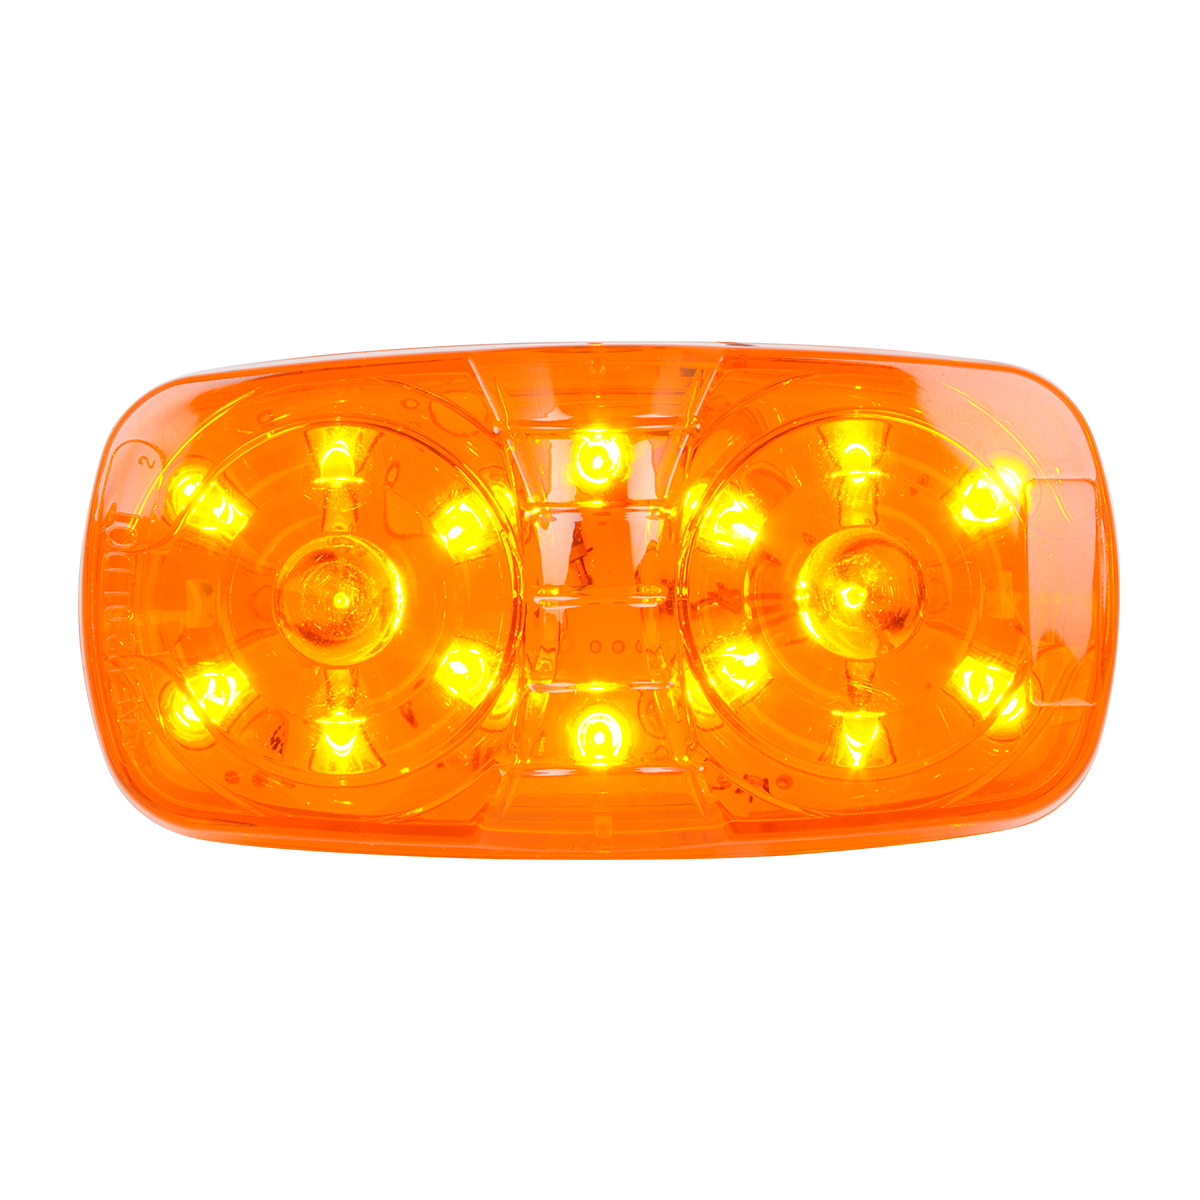 85240 Tiger Eye LED Marker Light in Amber/Amber